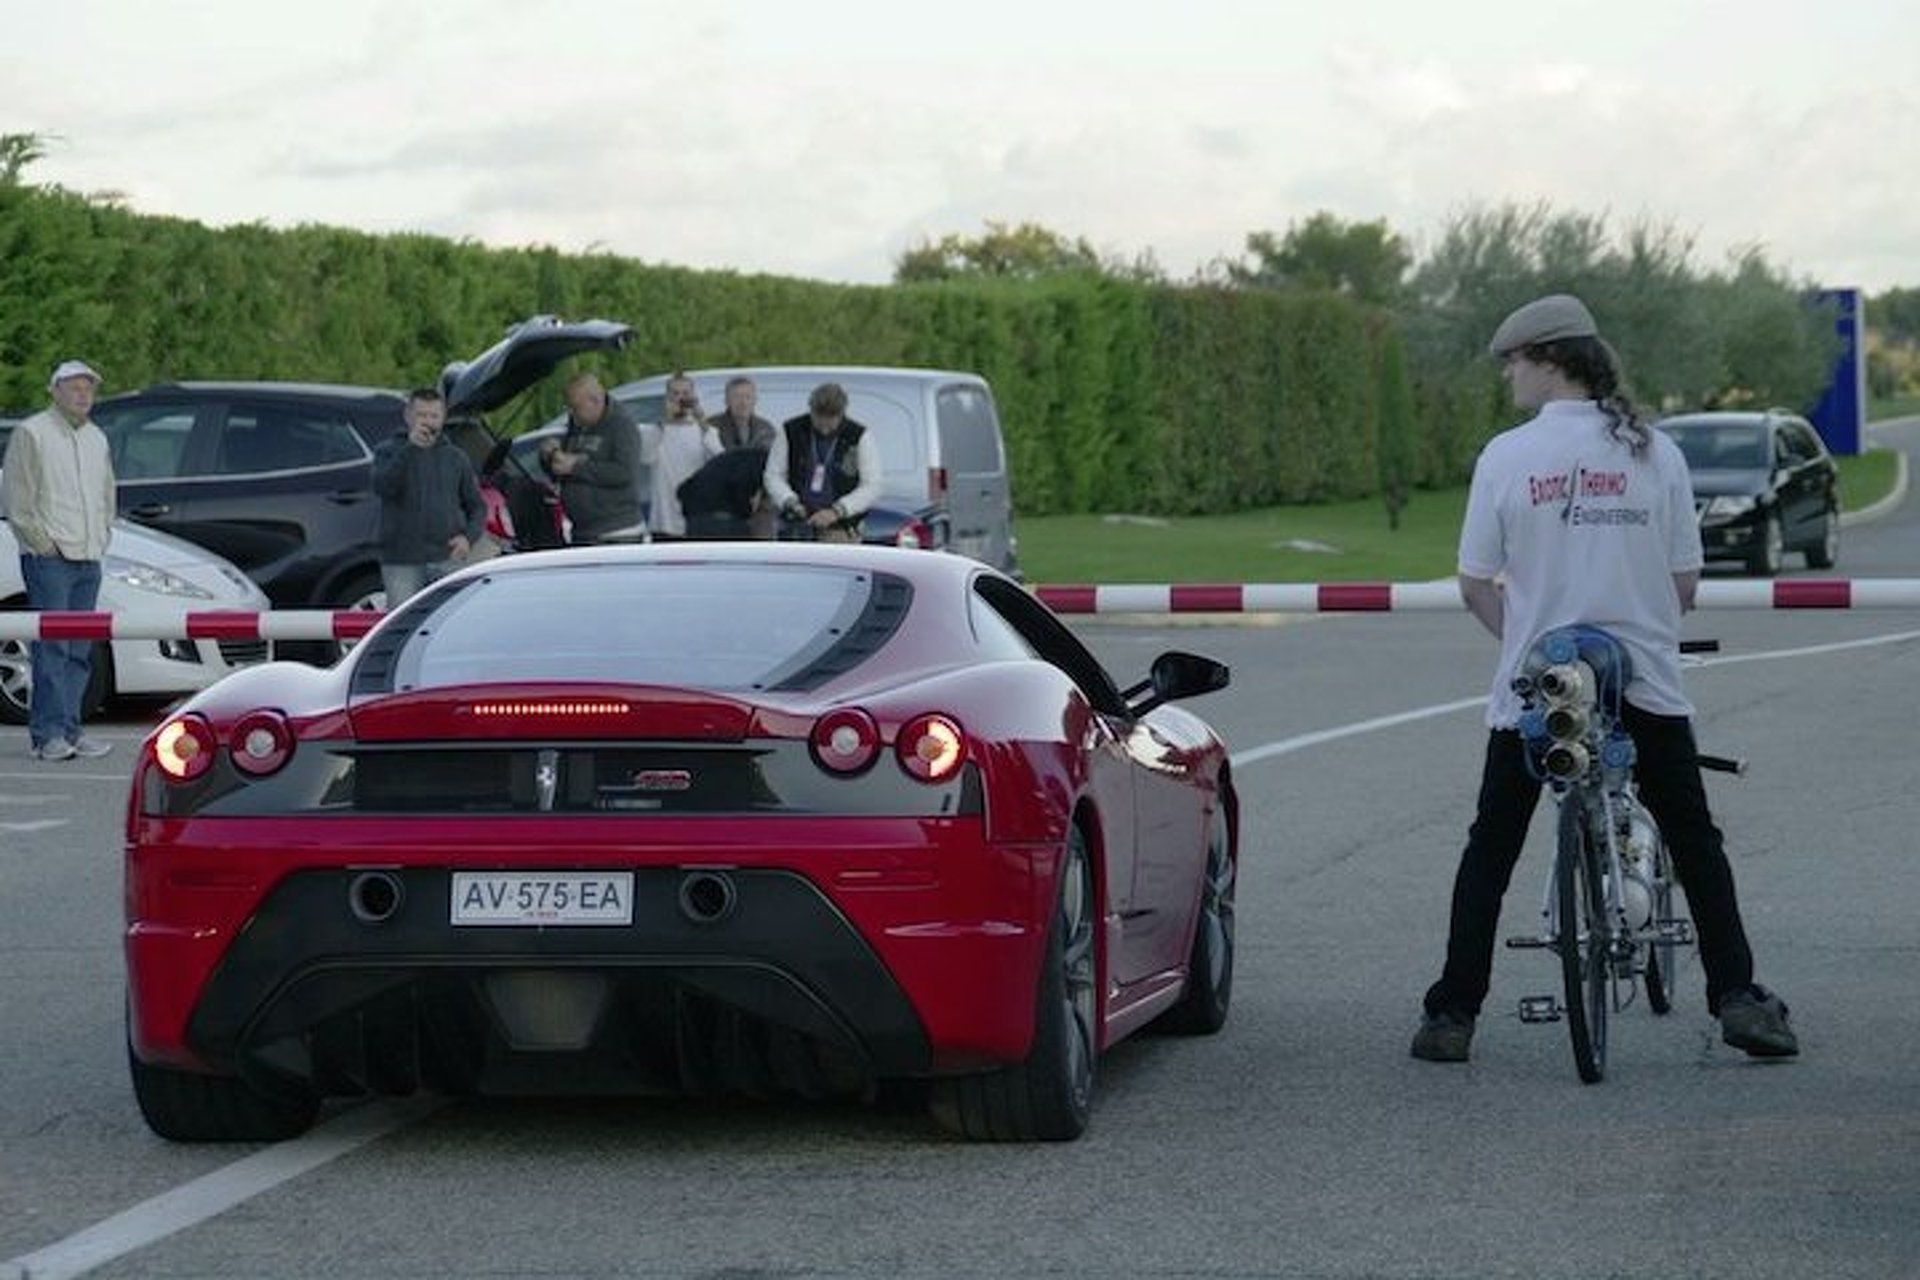 Watch This Rocket-Powered Bike Hit 200MPH